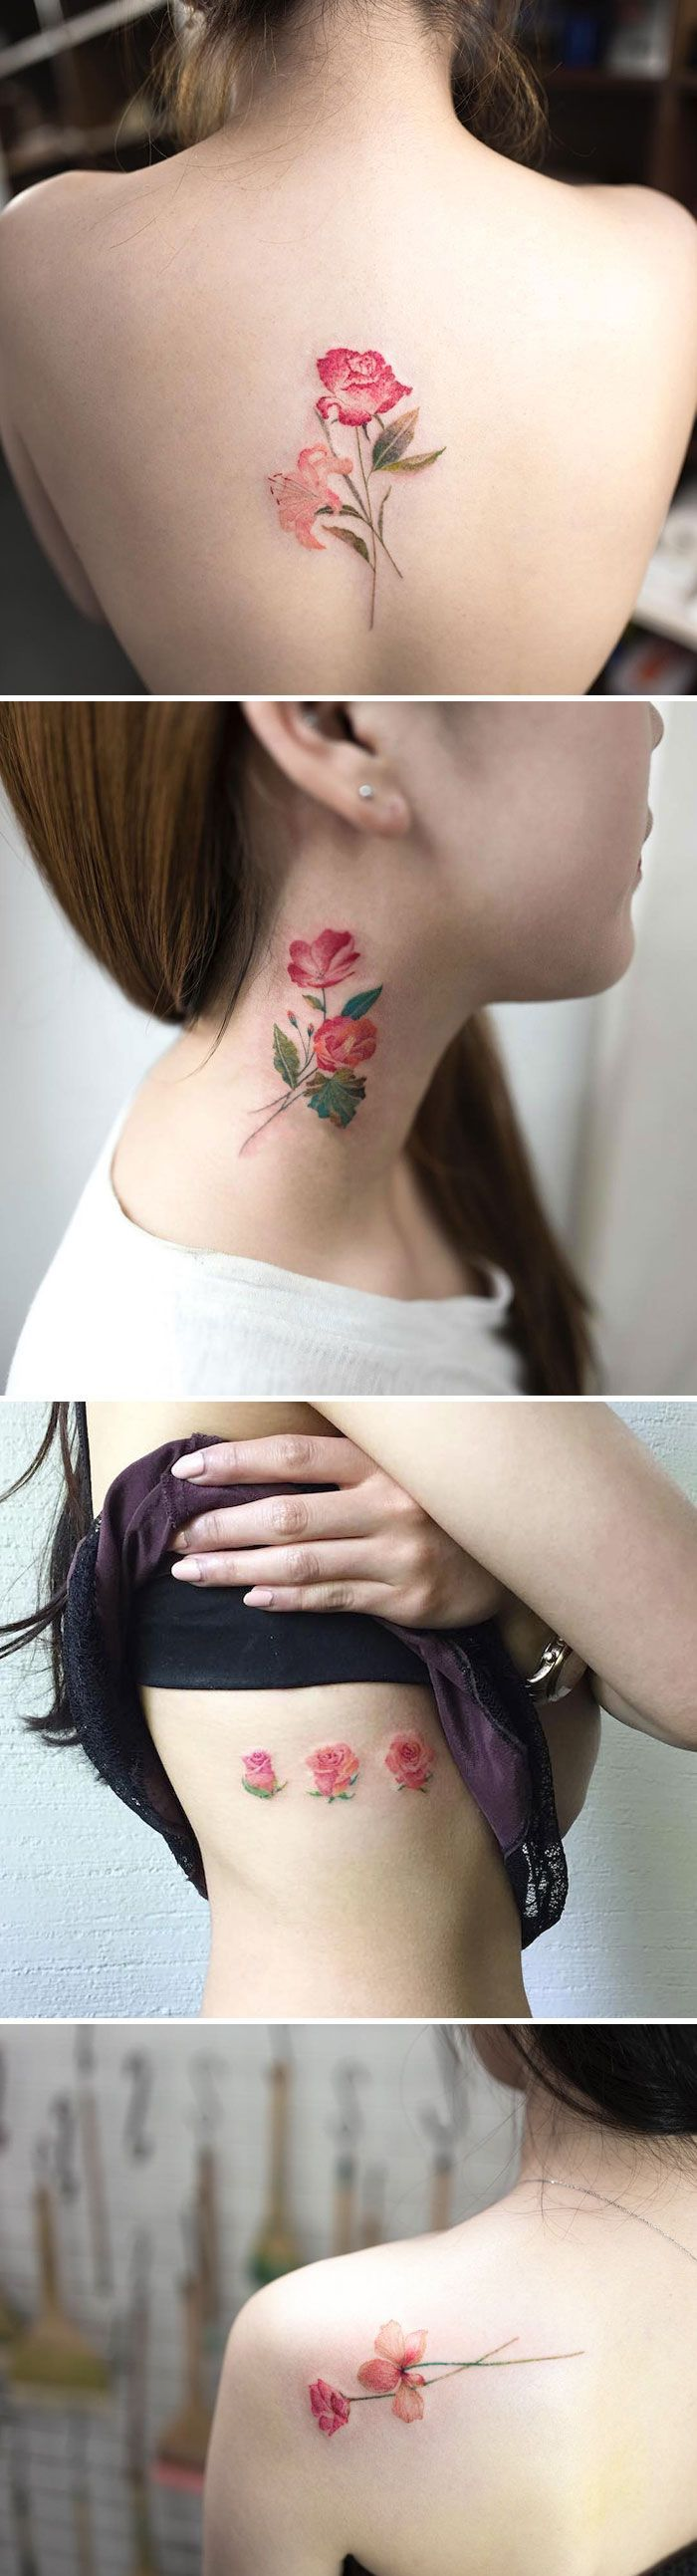 "Hongdam, South Korea [   ""Such pretty tattoos - Hongdam, South Korea"",   ""Spring is upon us, and summer isn& far behind it, meaning floral printed everything is officially necessary, and that includes tattoos as well."",   ""Floral tattoos designed are popular around the globe. Here is a collection of beautiful floral tattoos that will make you want to get inked."",   ""tattoo An artist who immortalizes the delicate beauty of flowers."",   ""A rose for each one of my sisters and best friends""…"